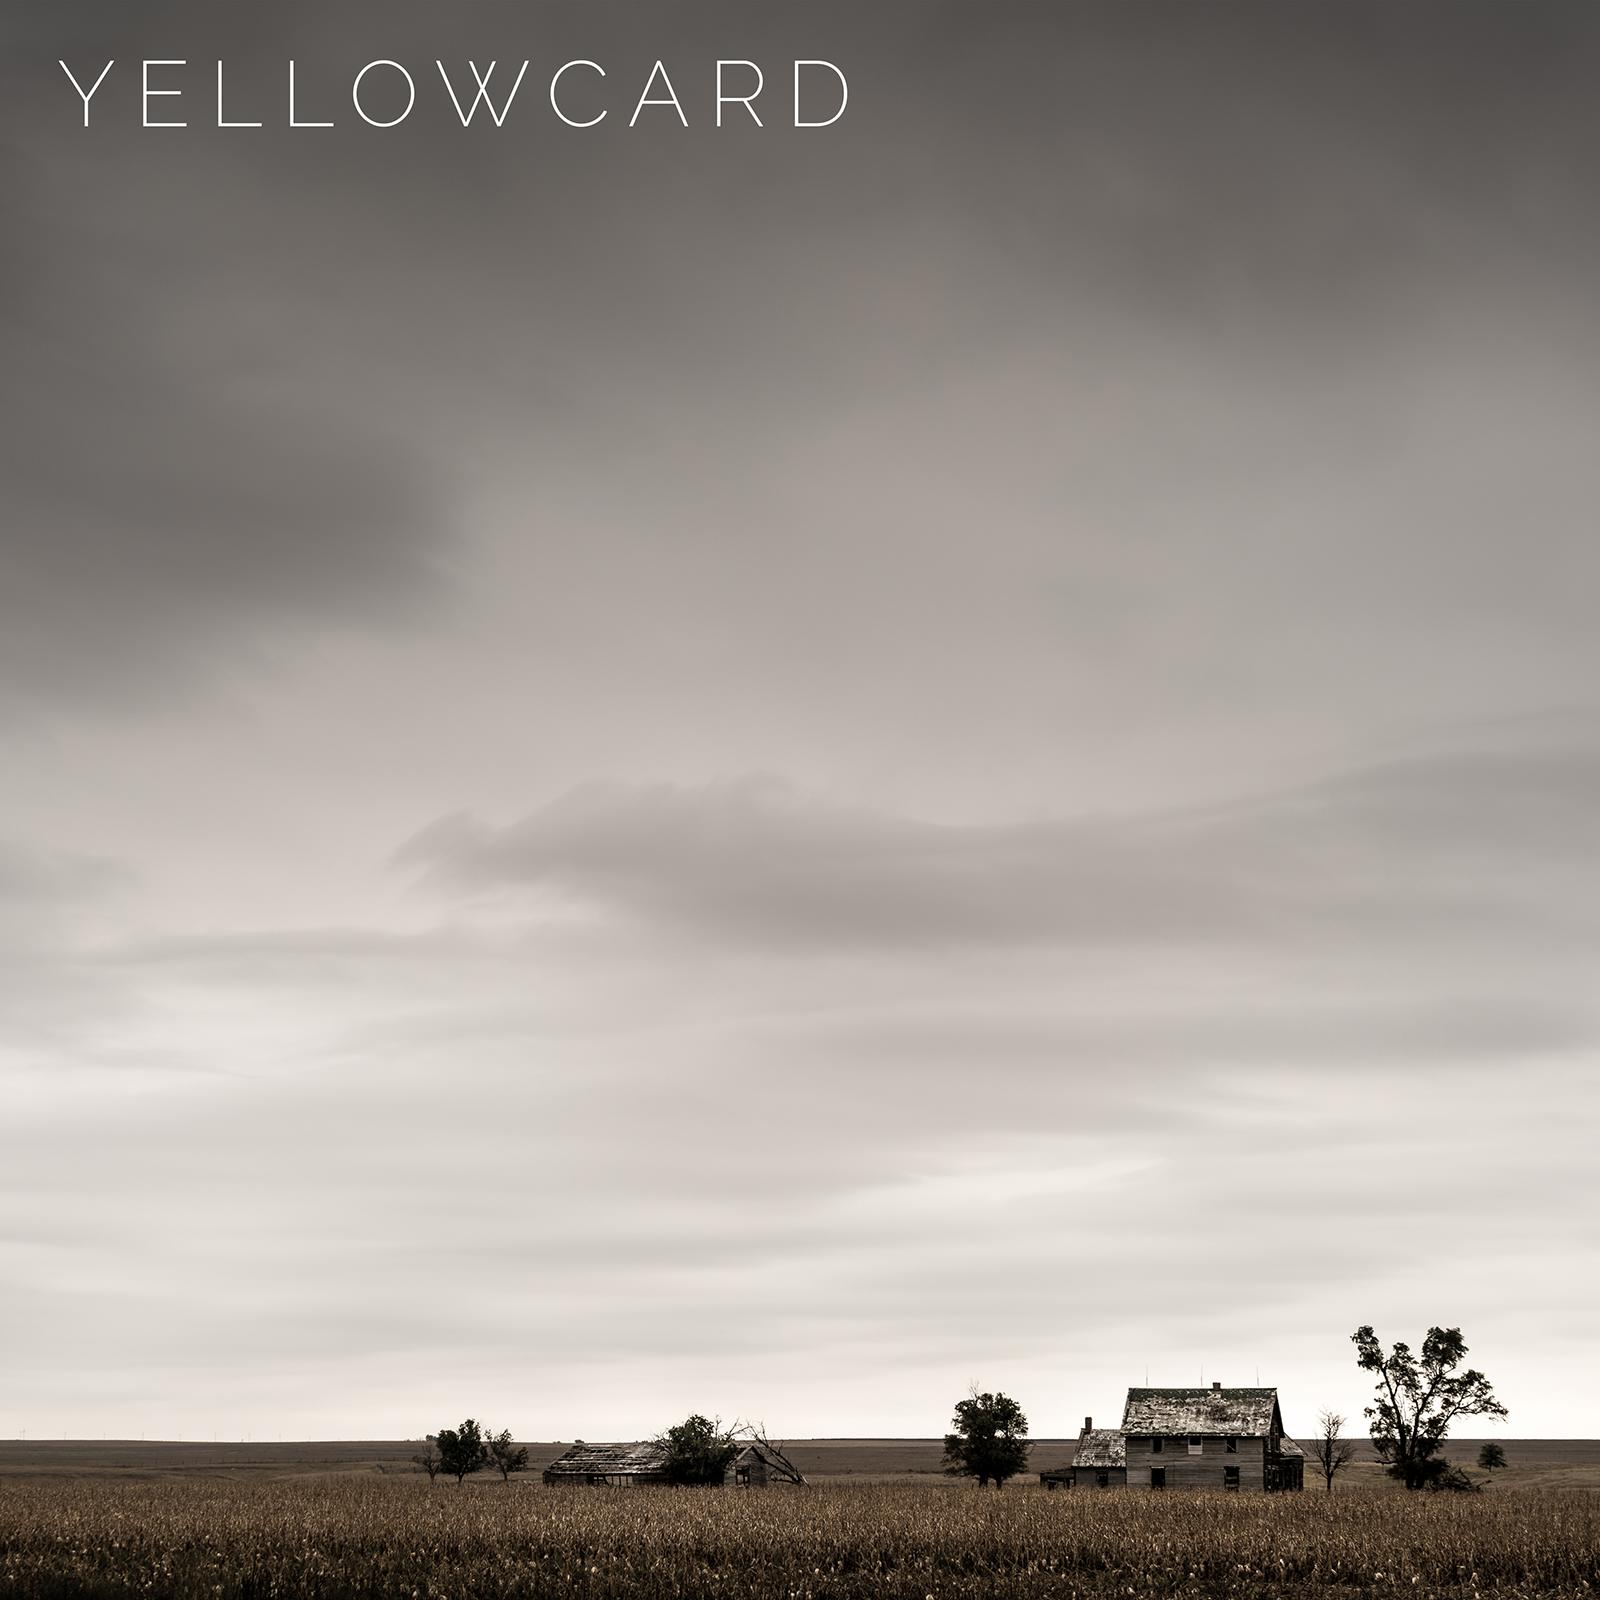 yellowcard_artwork.jpg